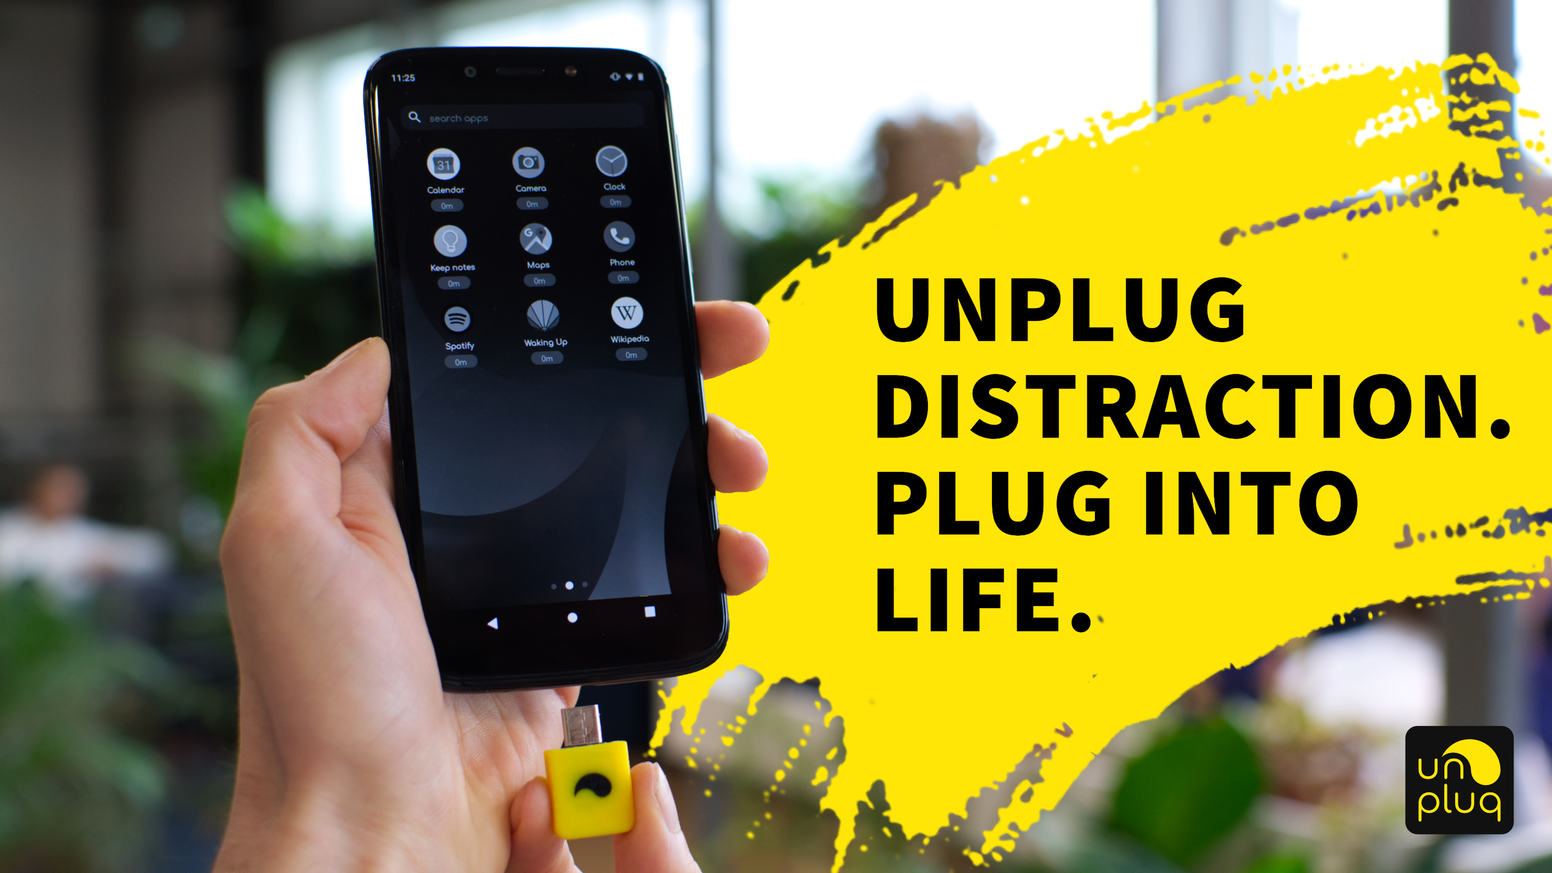 Focus on the meaningful things in life, by having the power to decide when to transform your phone into a distraction-free device.